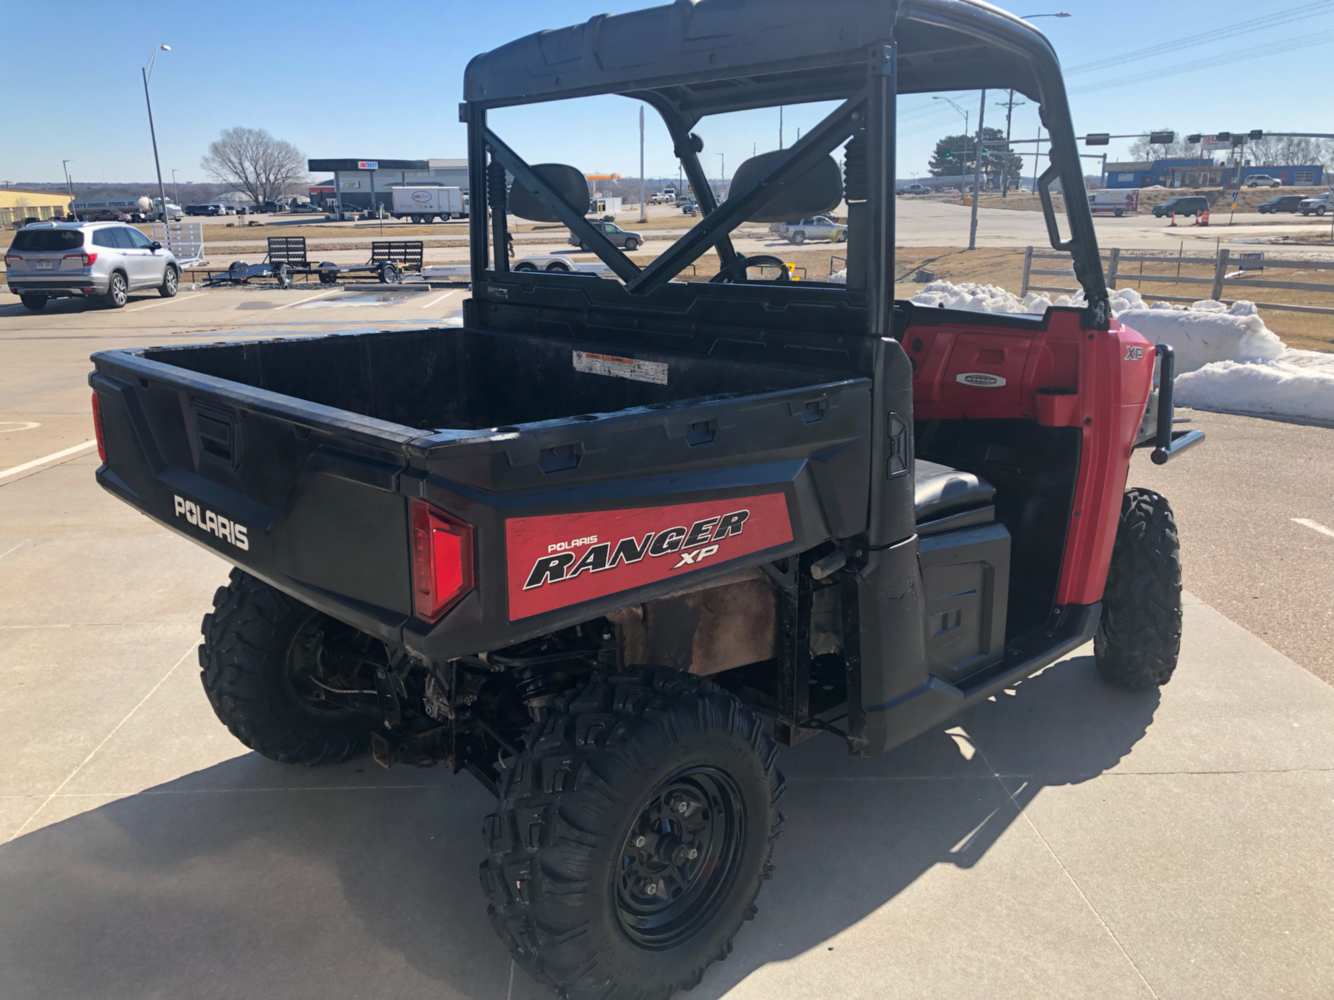 2013 Polaris Ranger XP® 900 in Roca, Nebraska - Photo 5